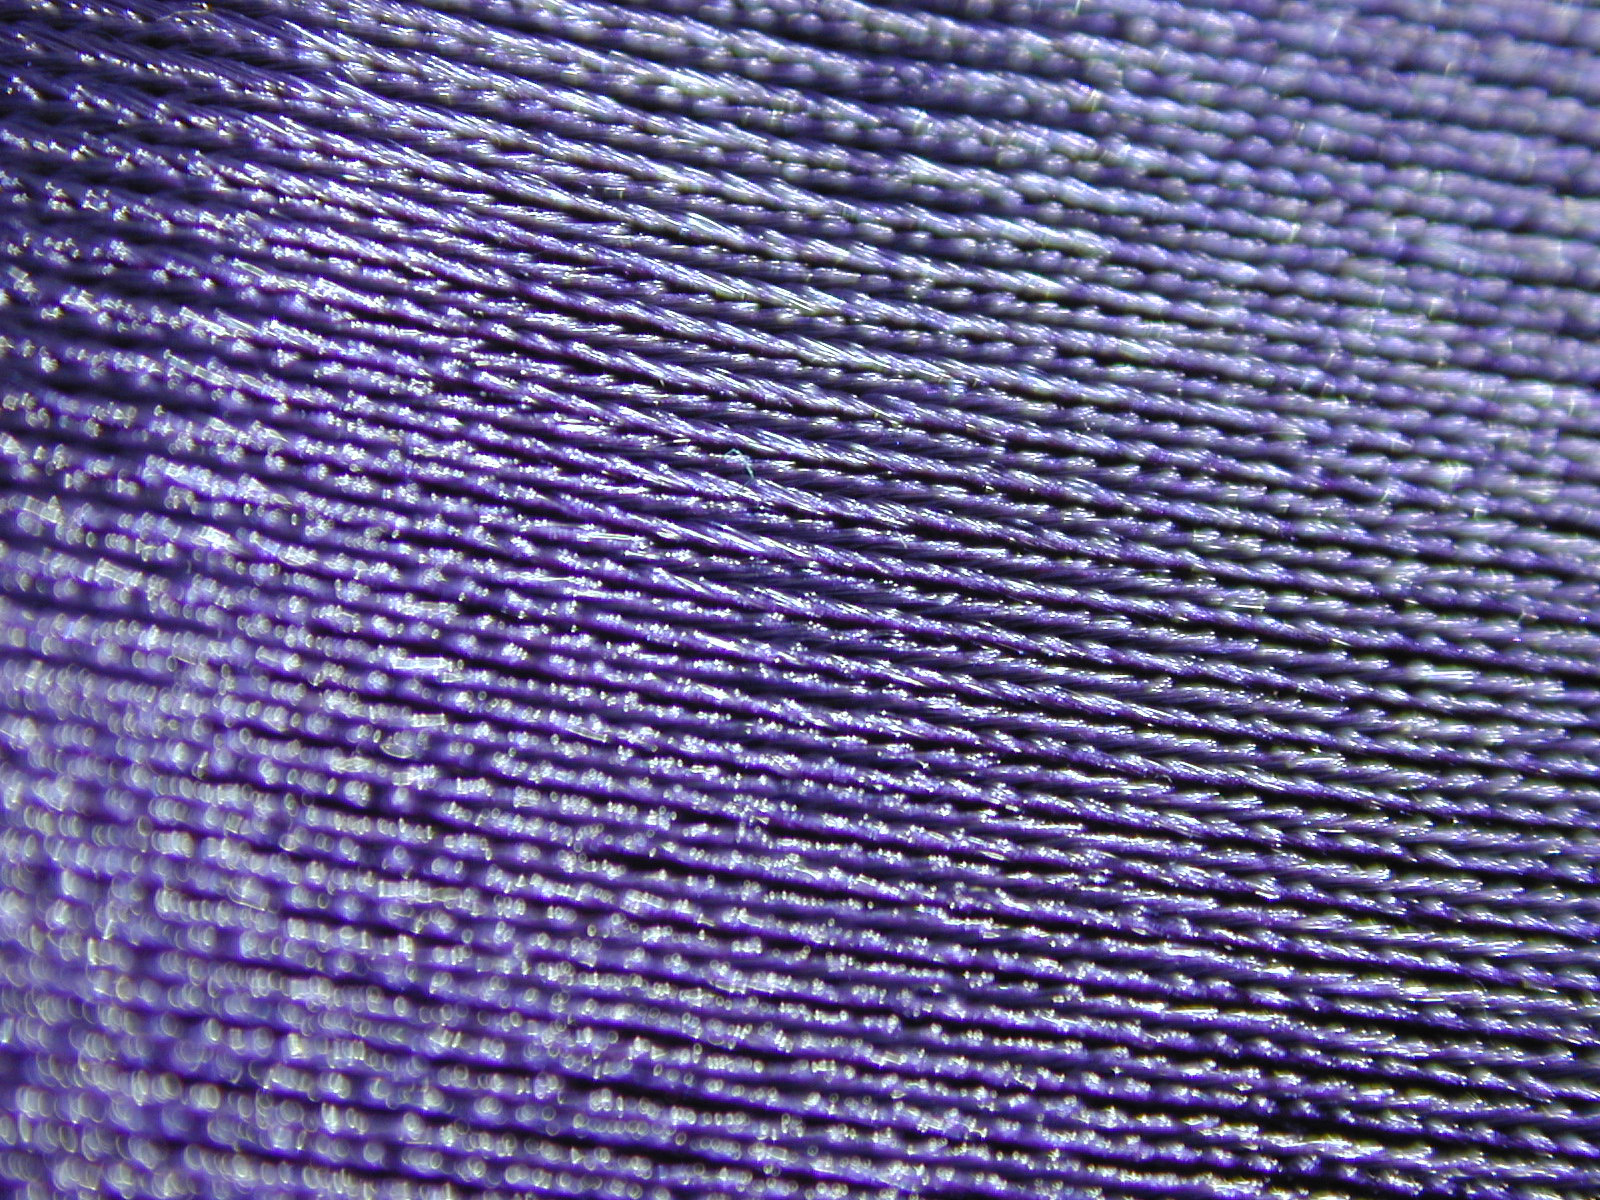 woven synthetic fabric detail